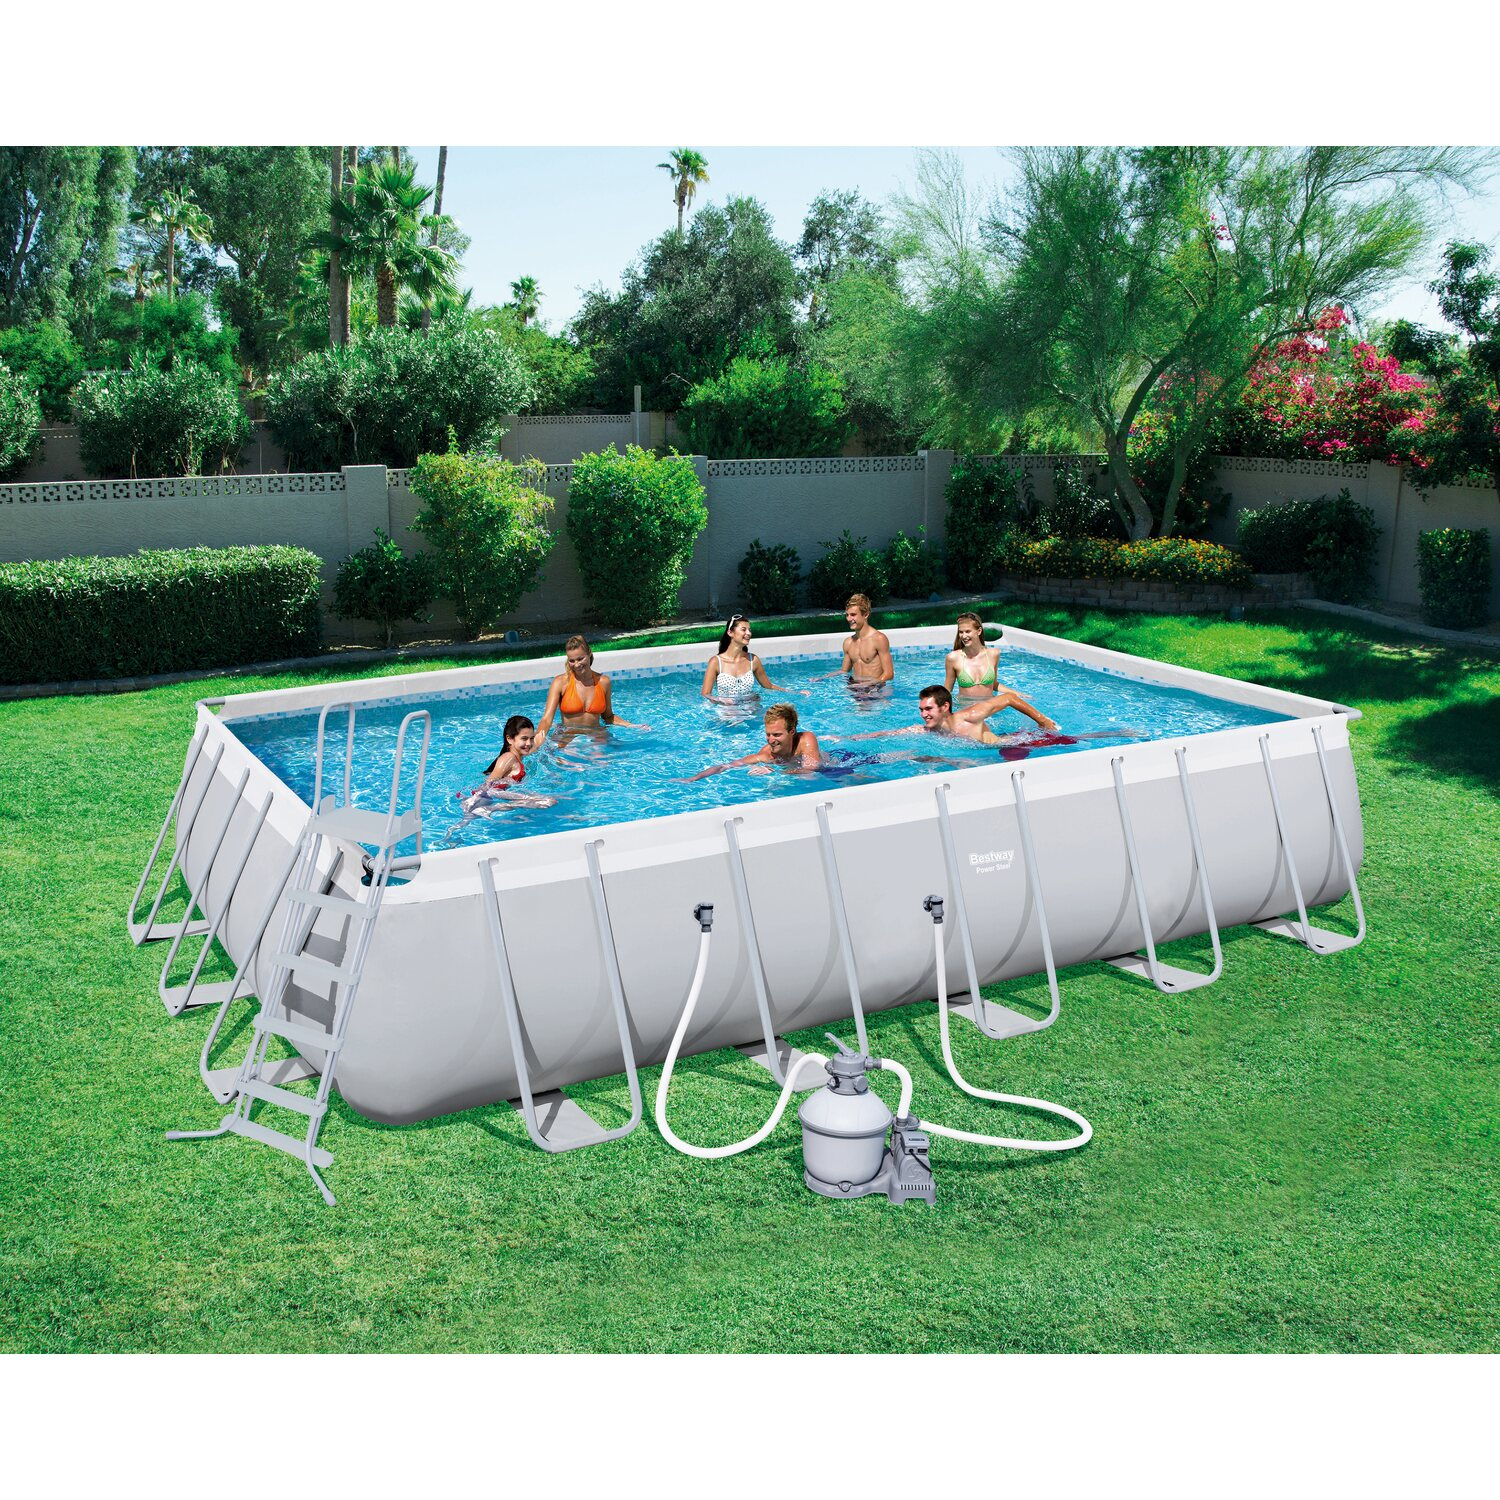 Bestway power stahl rectangular pool set 671 cm x 366 cm x for Bestway pool obi